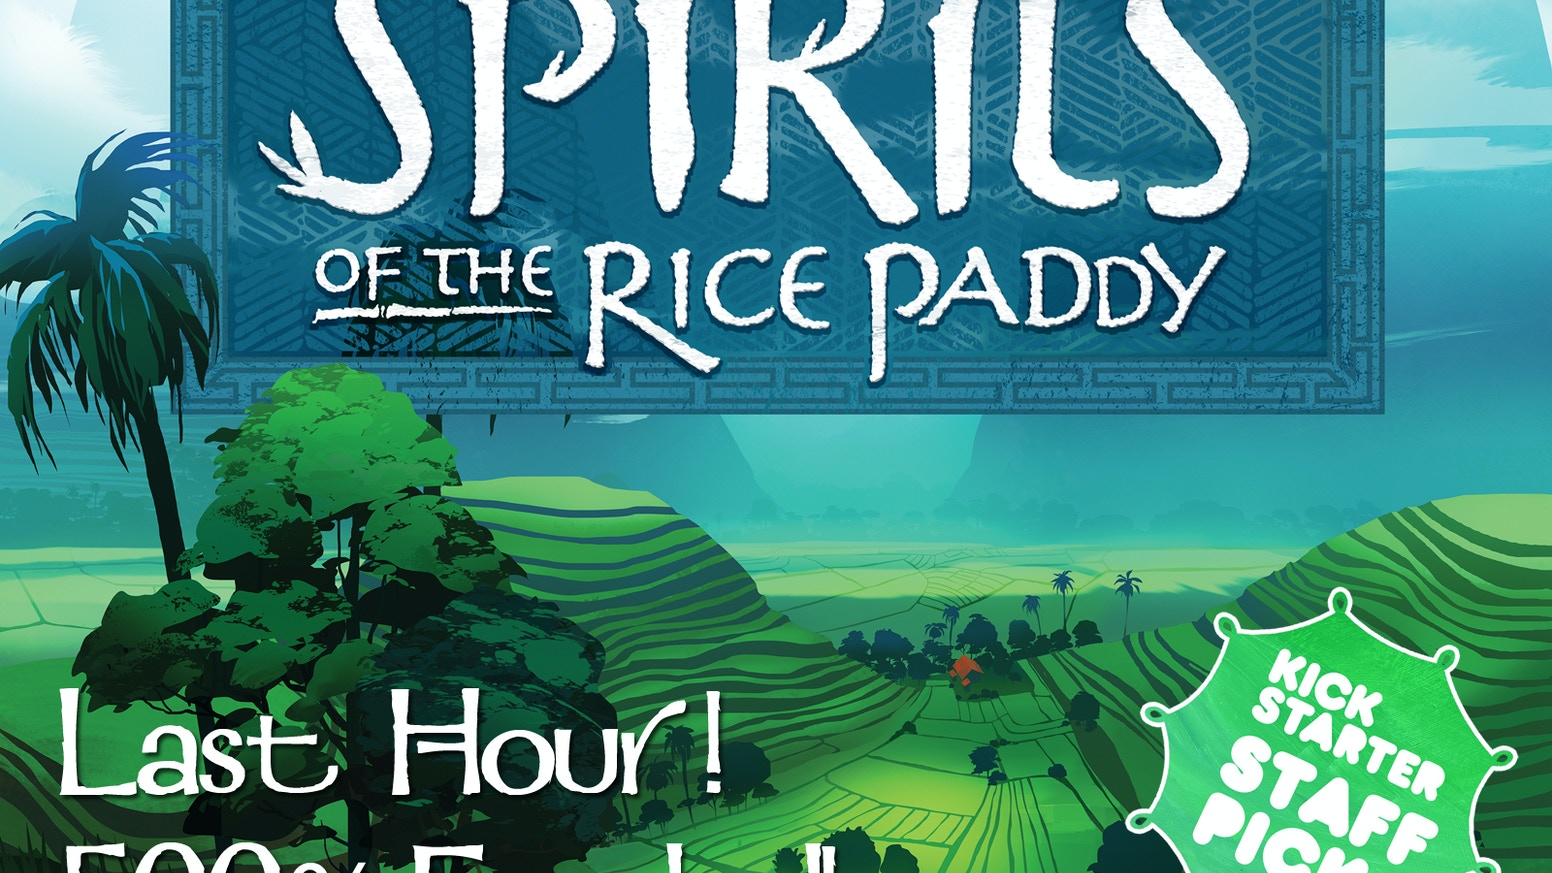 Step into the life of a Balinese farmer. Build your paddies, then plant, weed and harvest the rice. Let the Spirits guide your way... You can still get Spirits by clicking the button below!